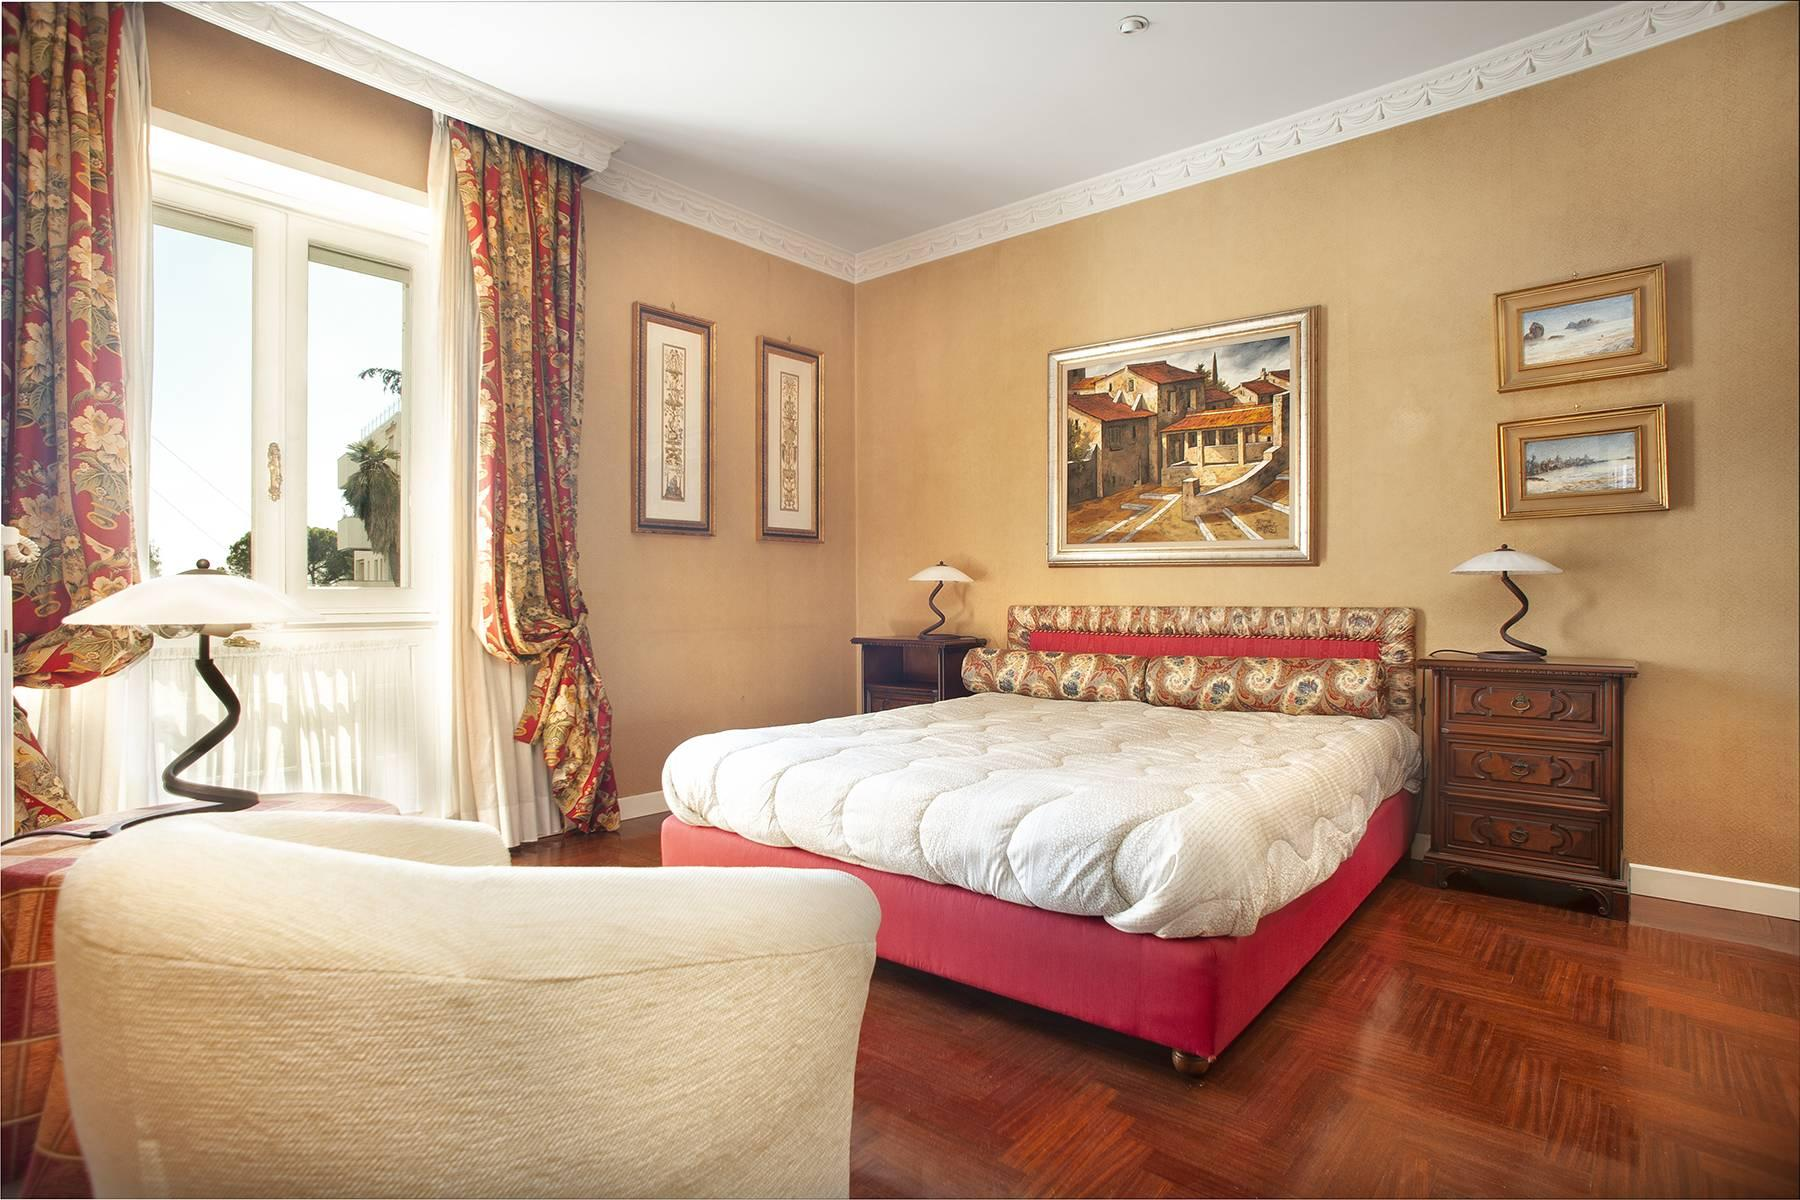 Stunning apartment a stone's throw from St. Peter's Basilica - 10